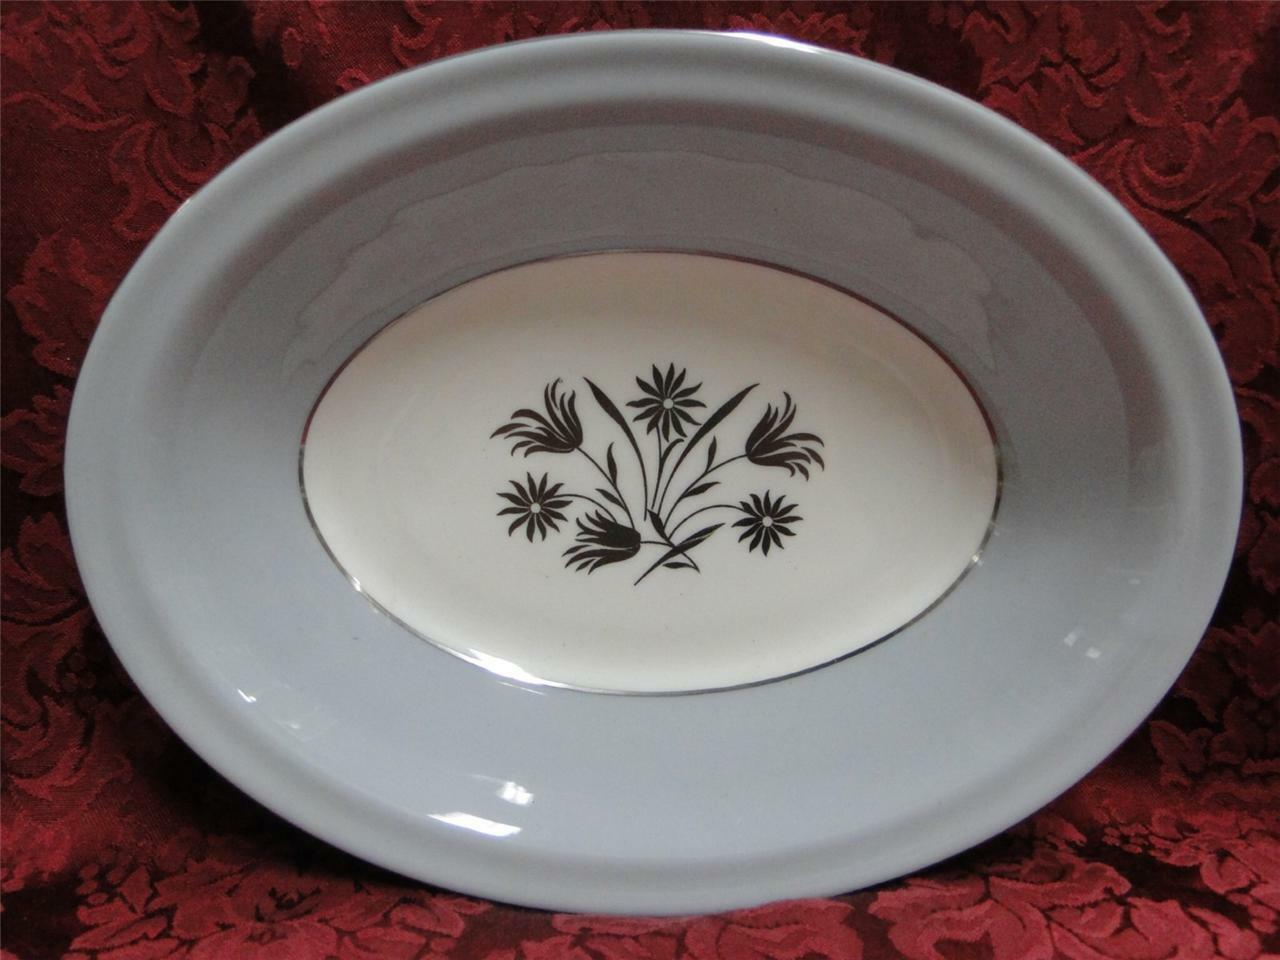 Royal Doulton Kingsmere H4909, Gray Band, Platinum Flowers: Oval Vegetable Bowl